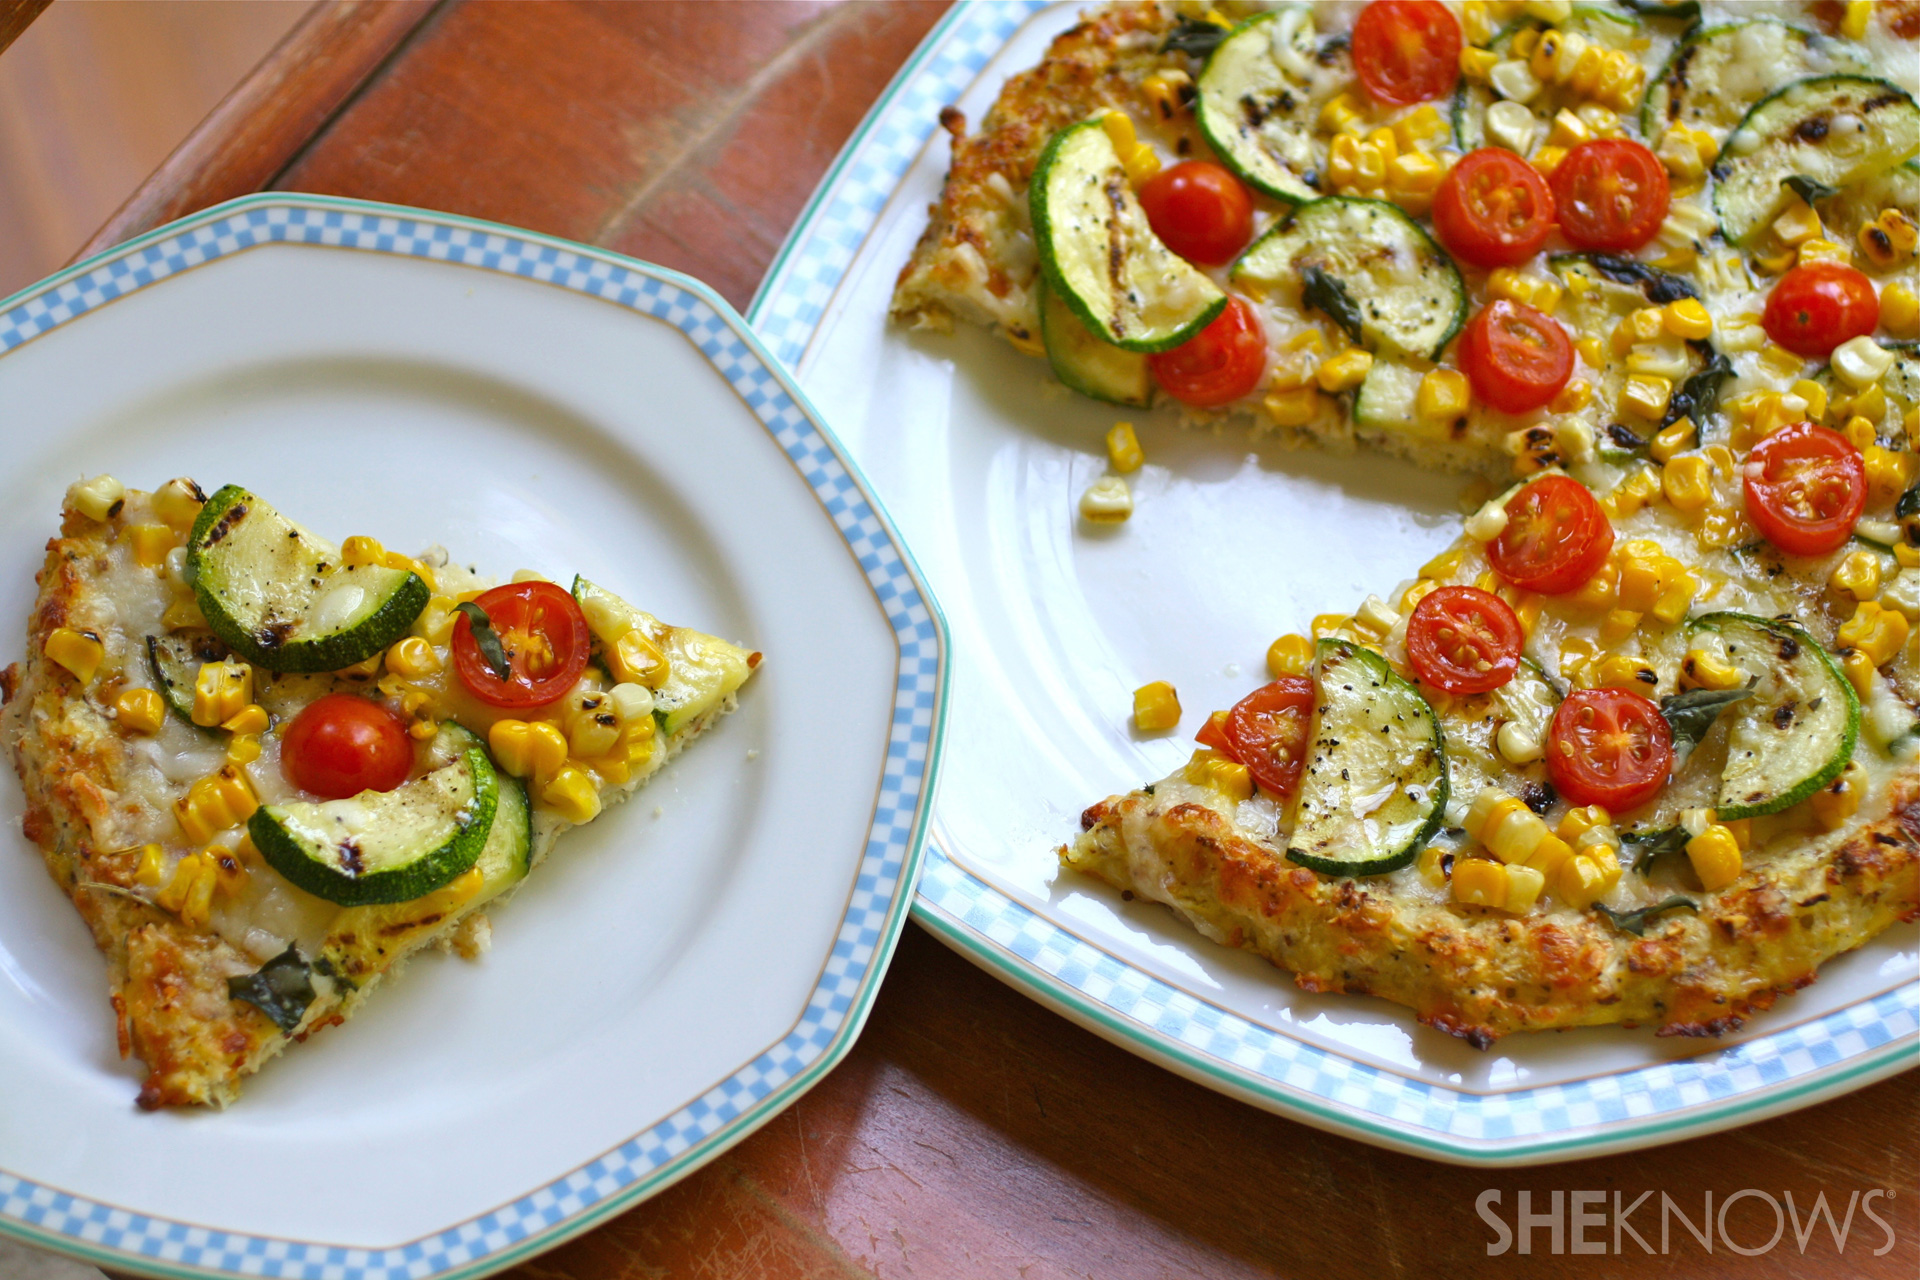 Cauliflower crust pizza with grilled corn, zucchini, and tomatoes